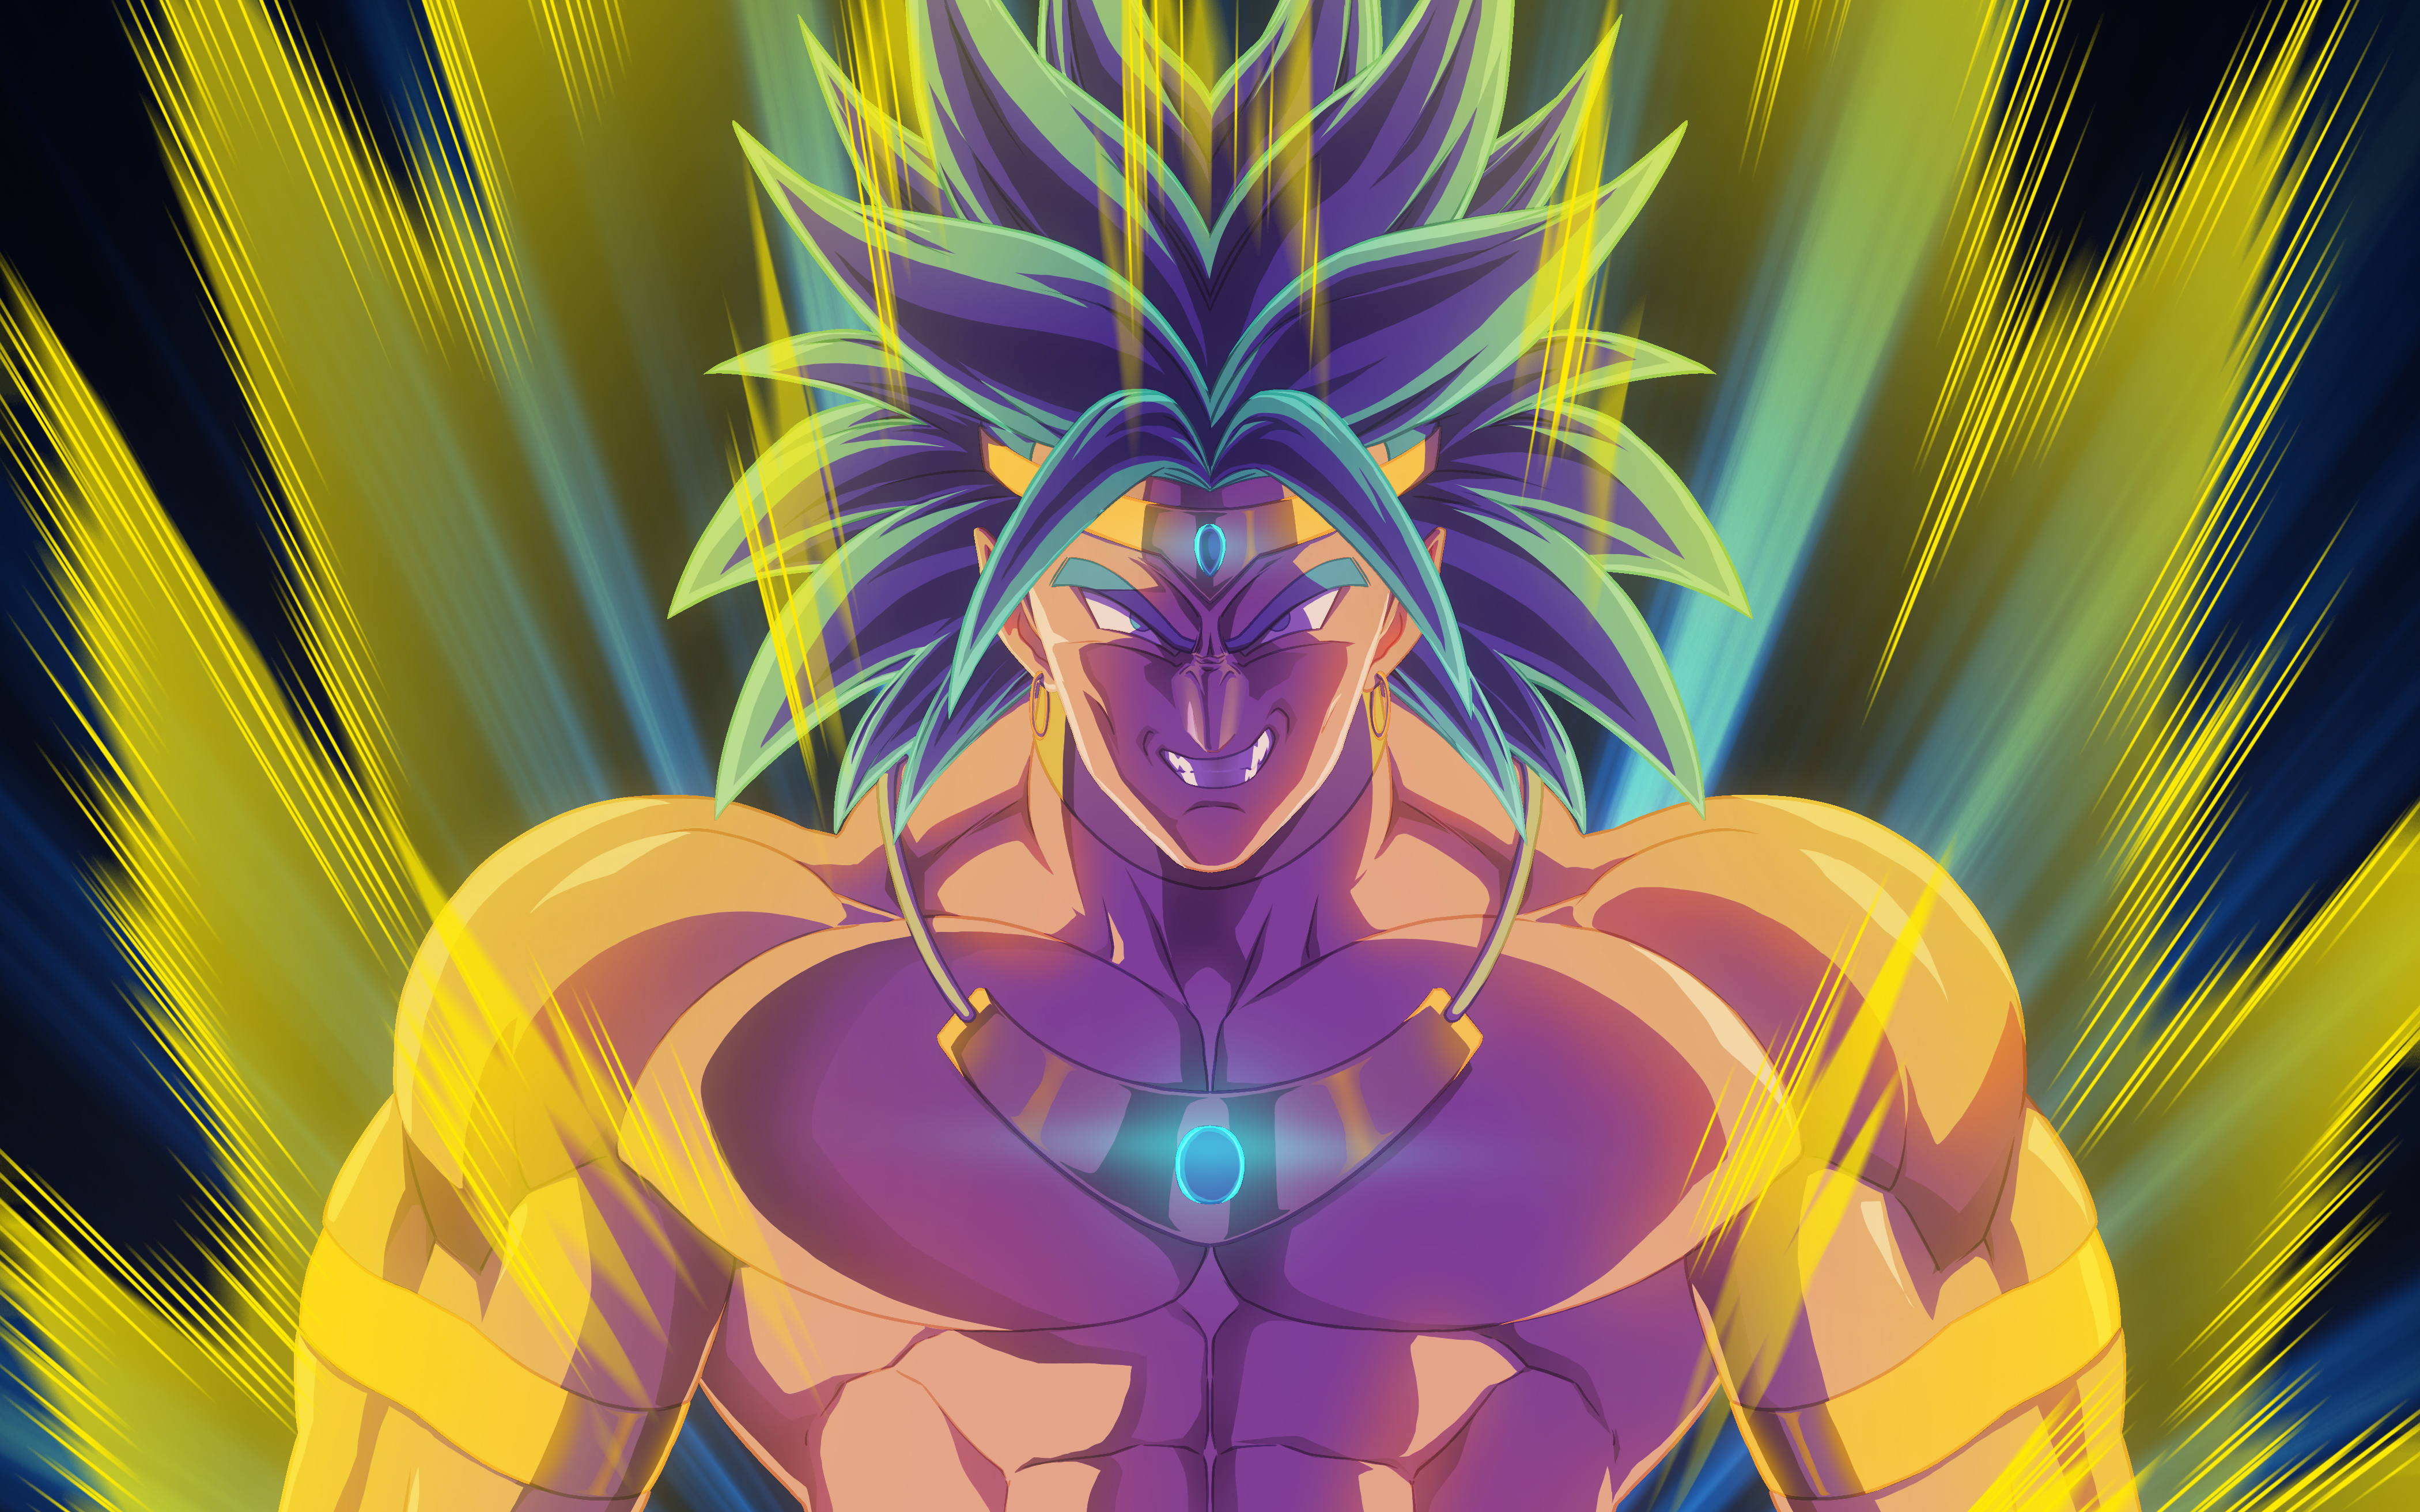 Wallpaper 4k Broly Dragon Ball Z Artwork 4k Artwork Ball Broly